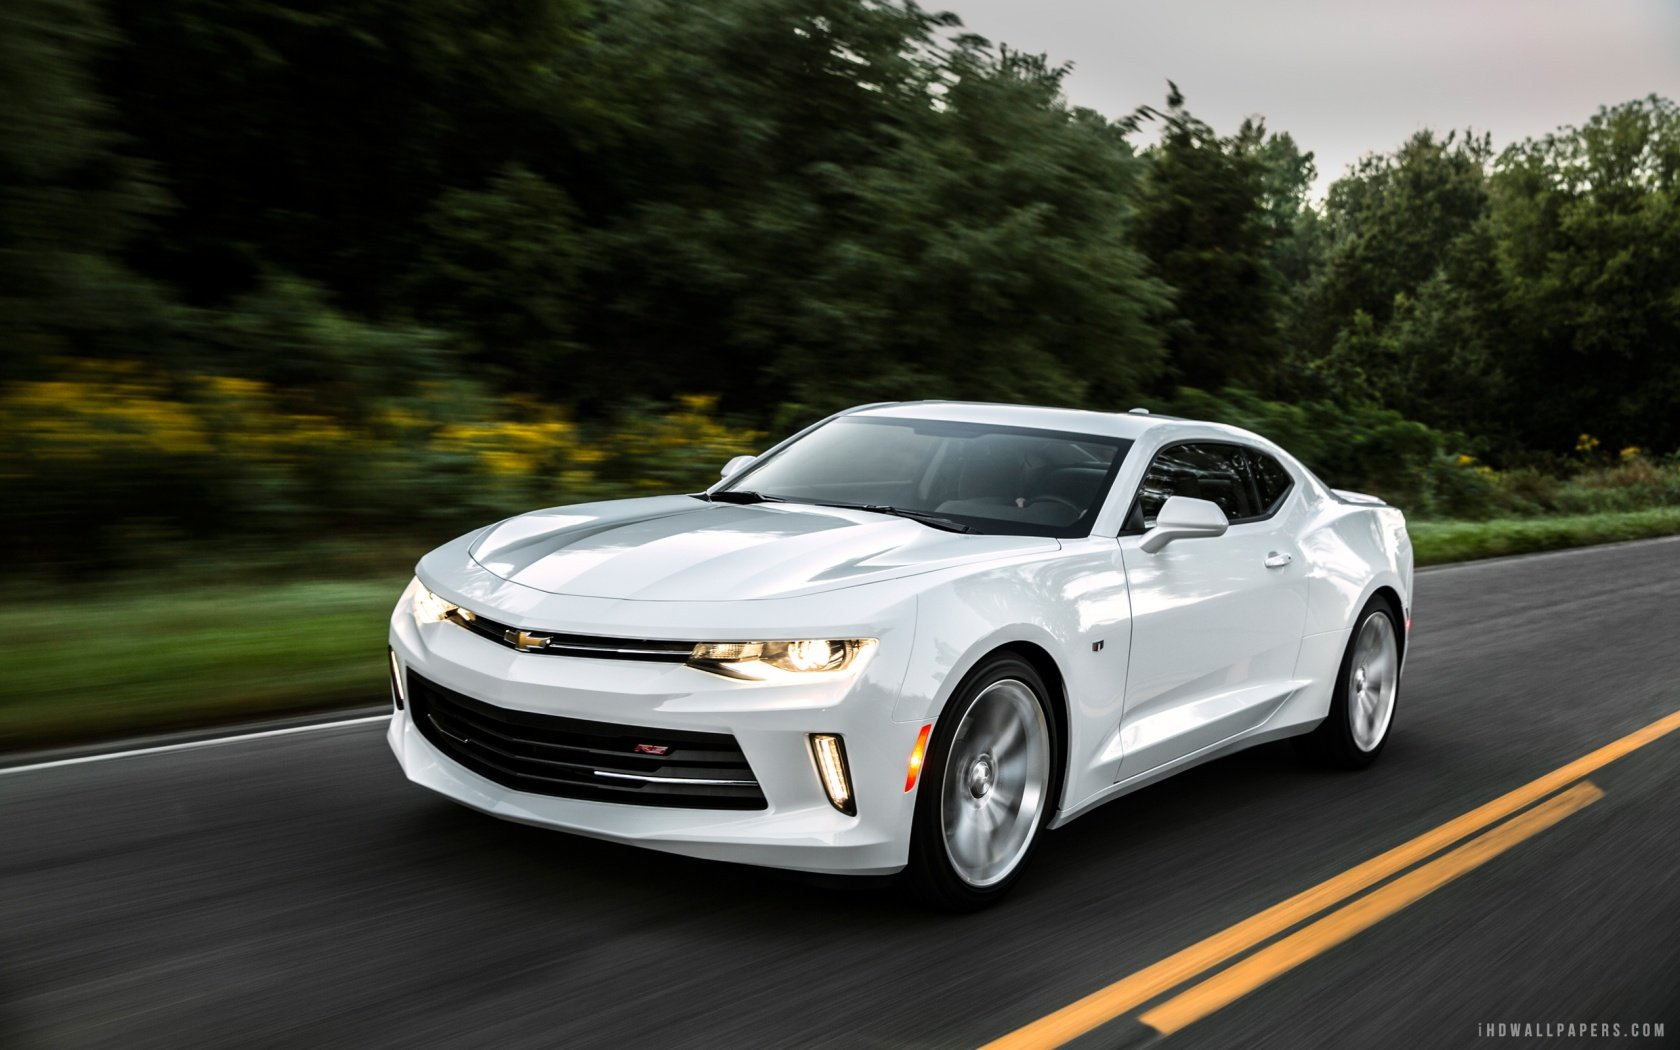 2016 Chevy Camaro V6 HD Wallpaper   iHD Wallpapers 1680x1050